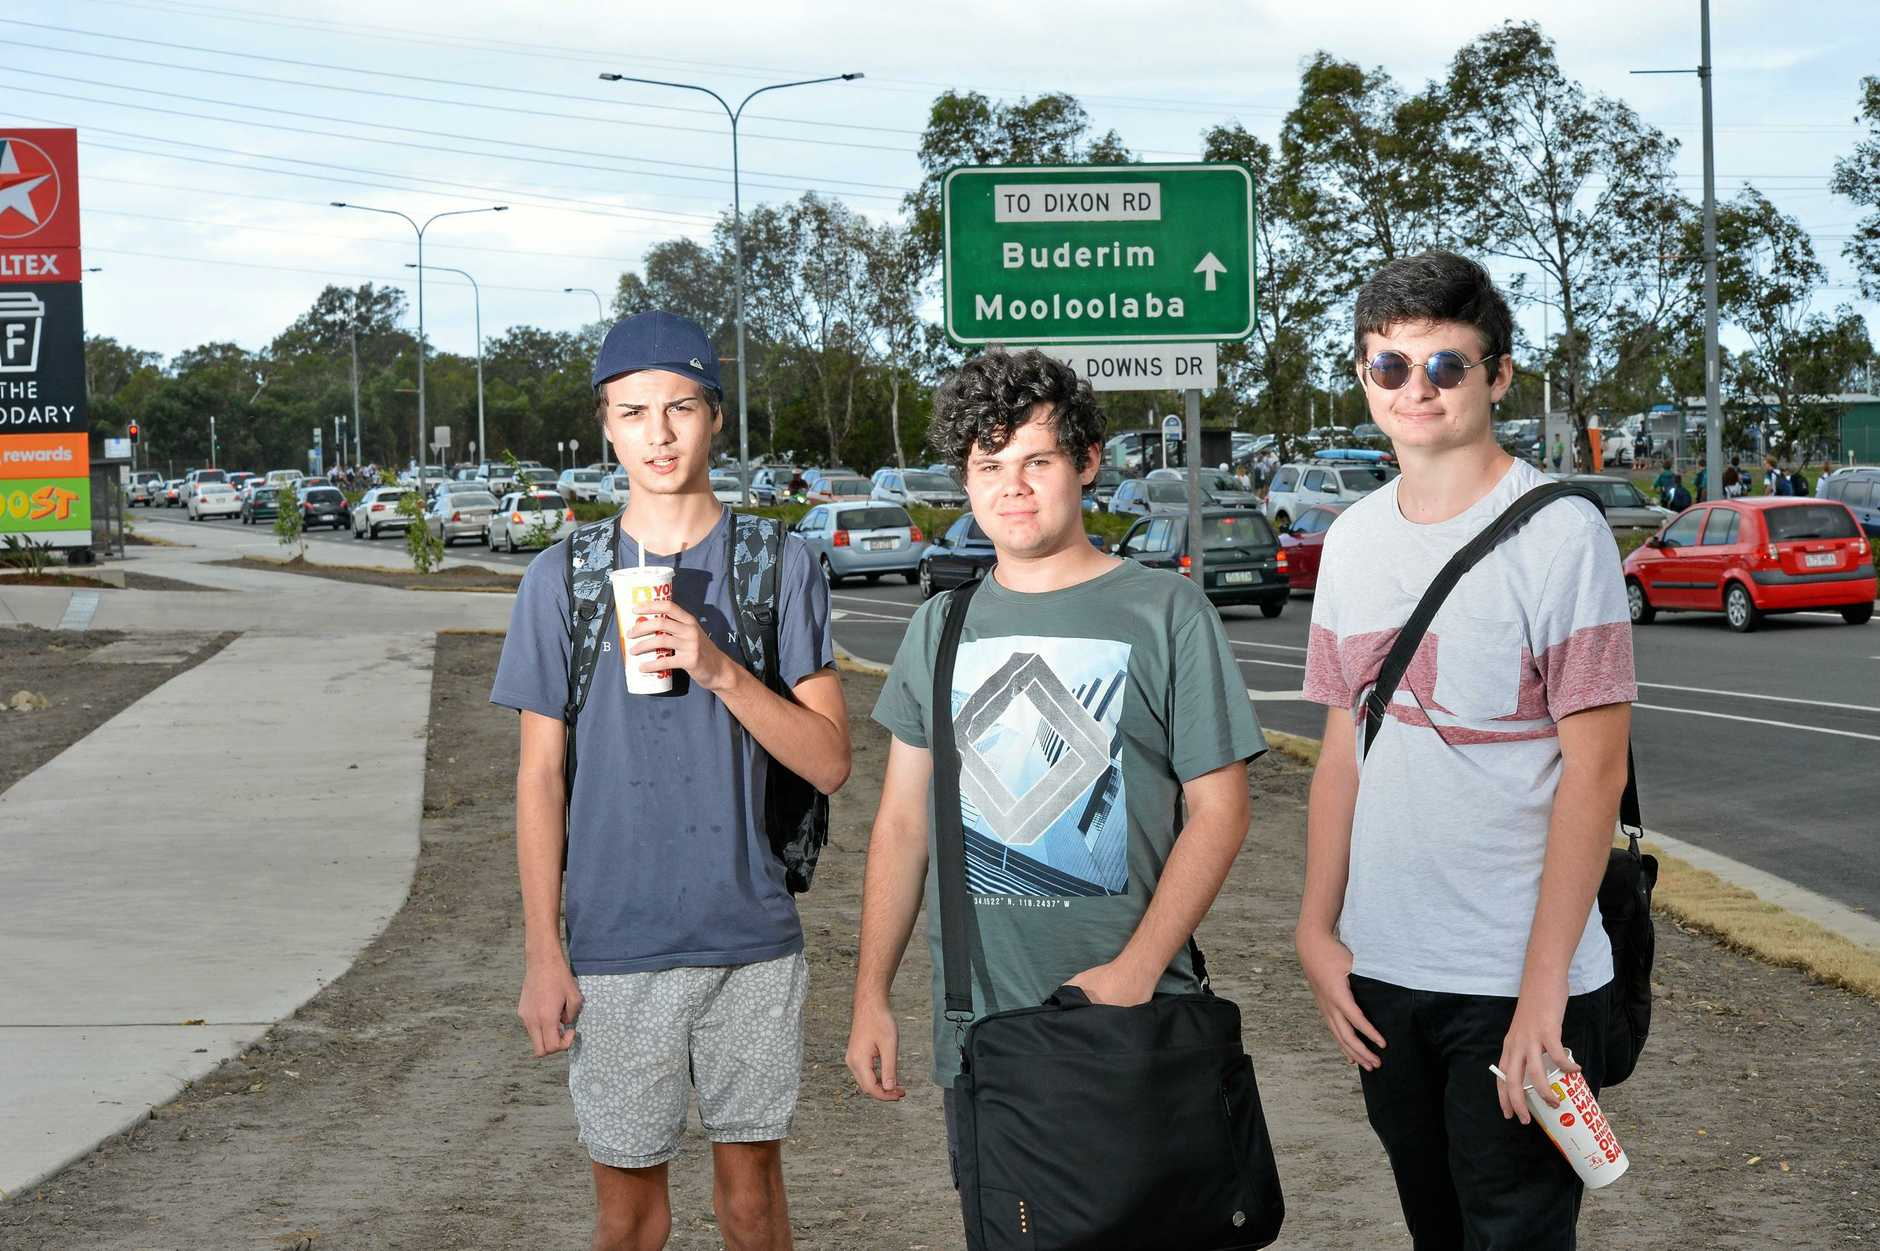 Connor Delaney (white shirt), 18, Luke Kellett (green shirt), 18, and Tyson Alker (black hat), 18, are University of the Sunshine Coast students taking advantage of the nearby food options which have drawn hundreds of schoolkids each day.